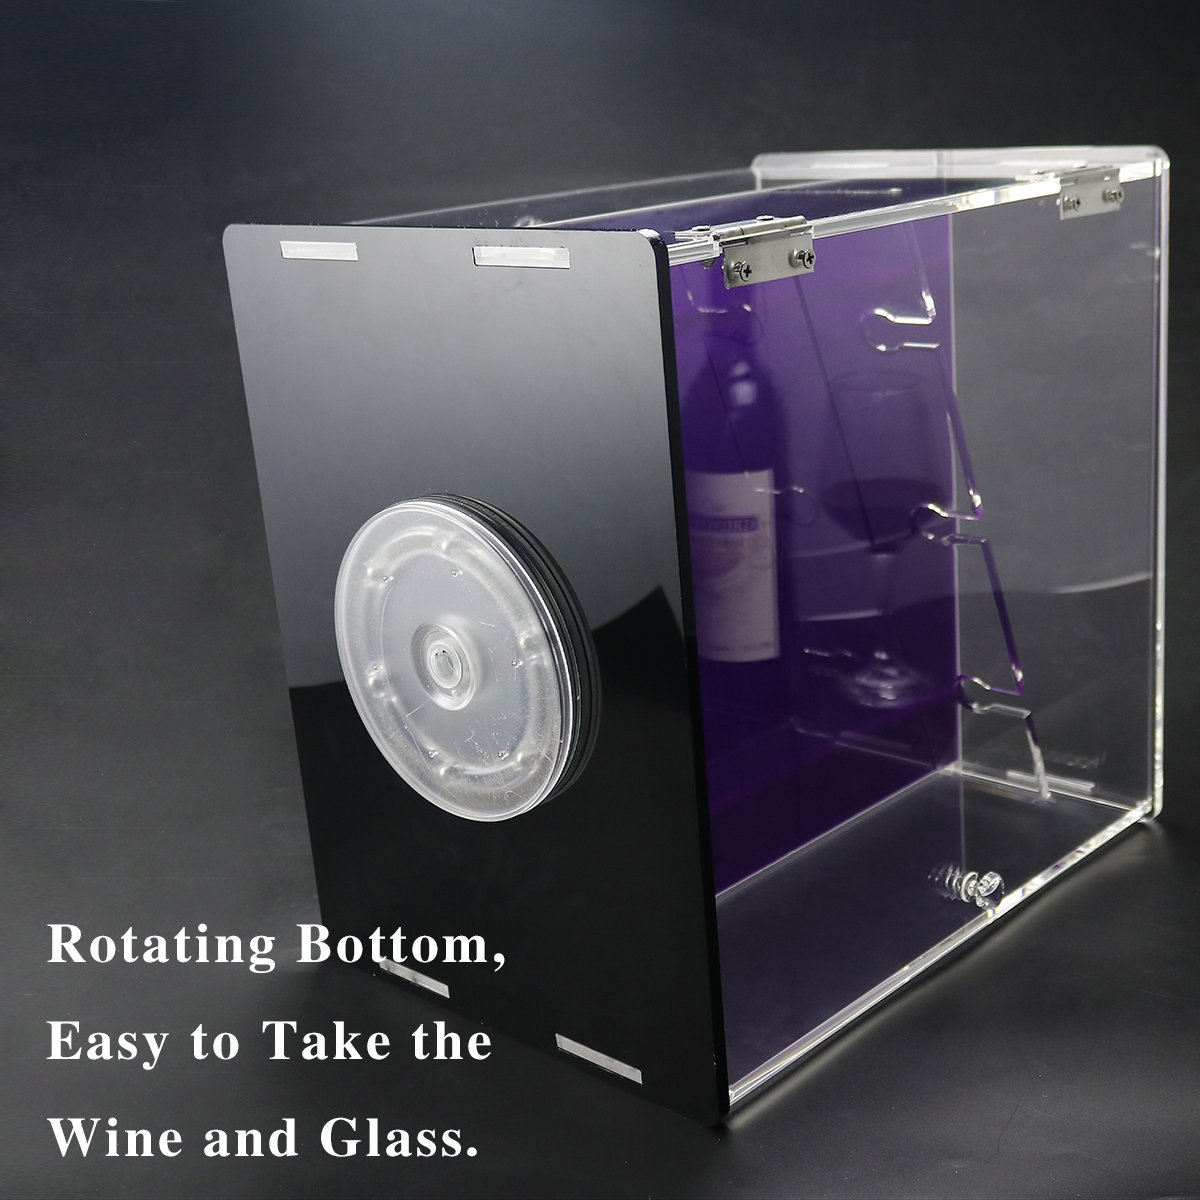 Deluxe Wine Storage Rack, Clear Acrylic Wine Cabinets With Glass Holder Countertop, Wine Rack Organizer With 3 Bottle Holder and 3 Glass Rack,Dustproof Box,Rotating Base (DYC-WDB001)